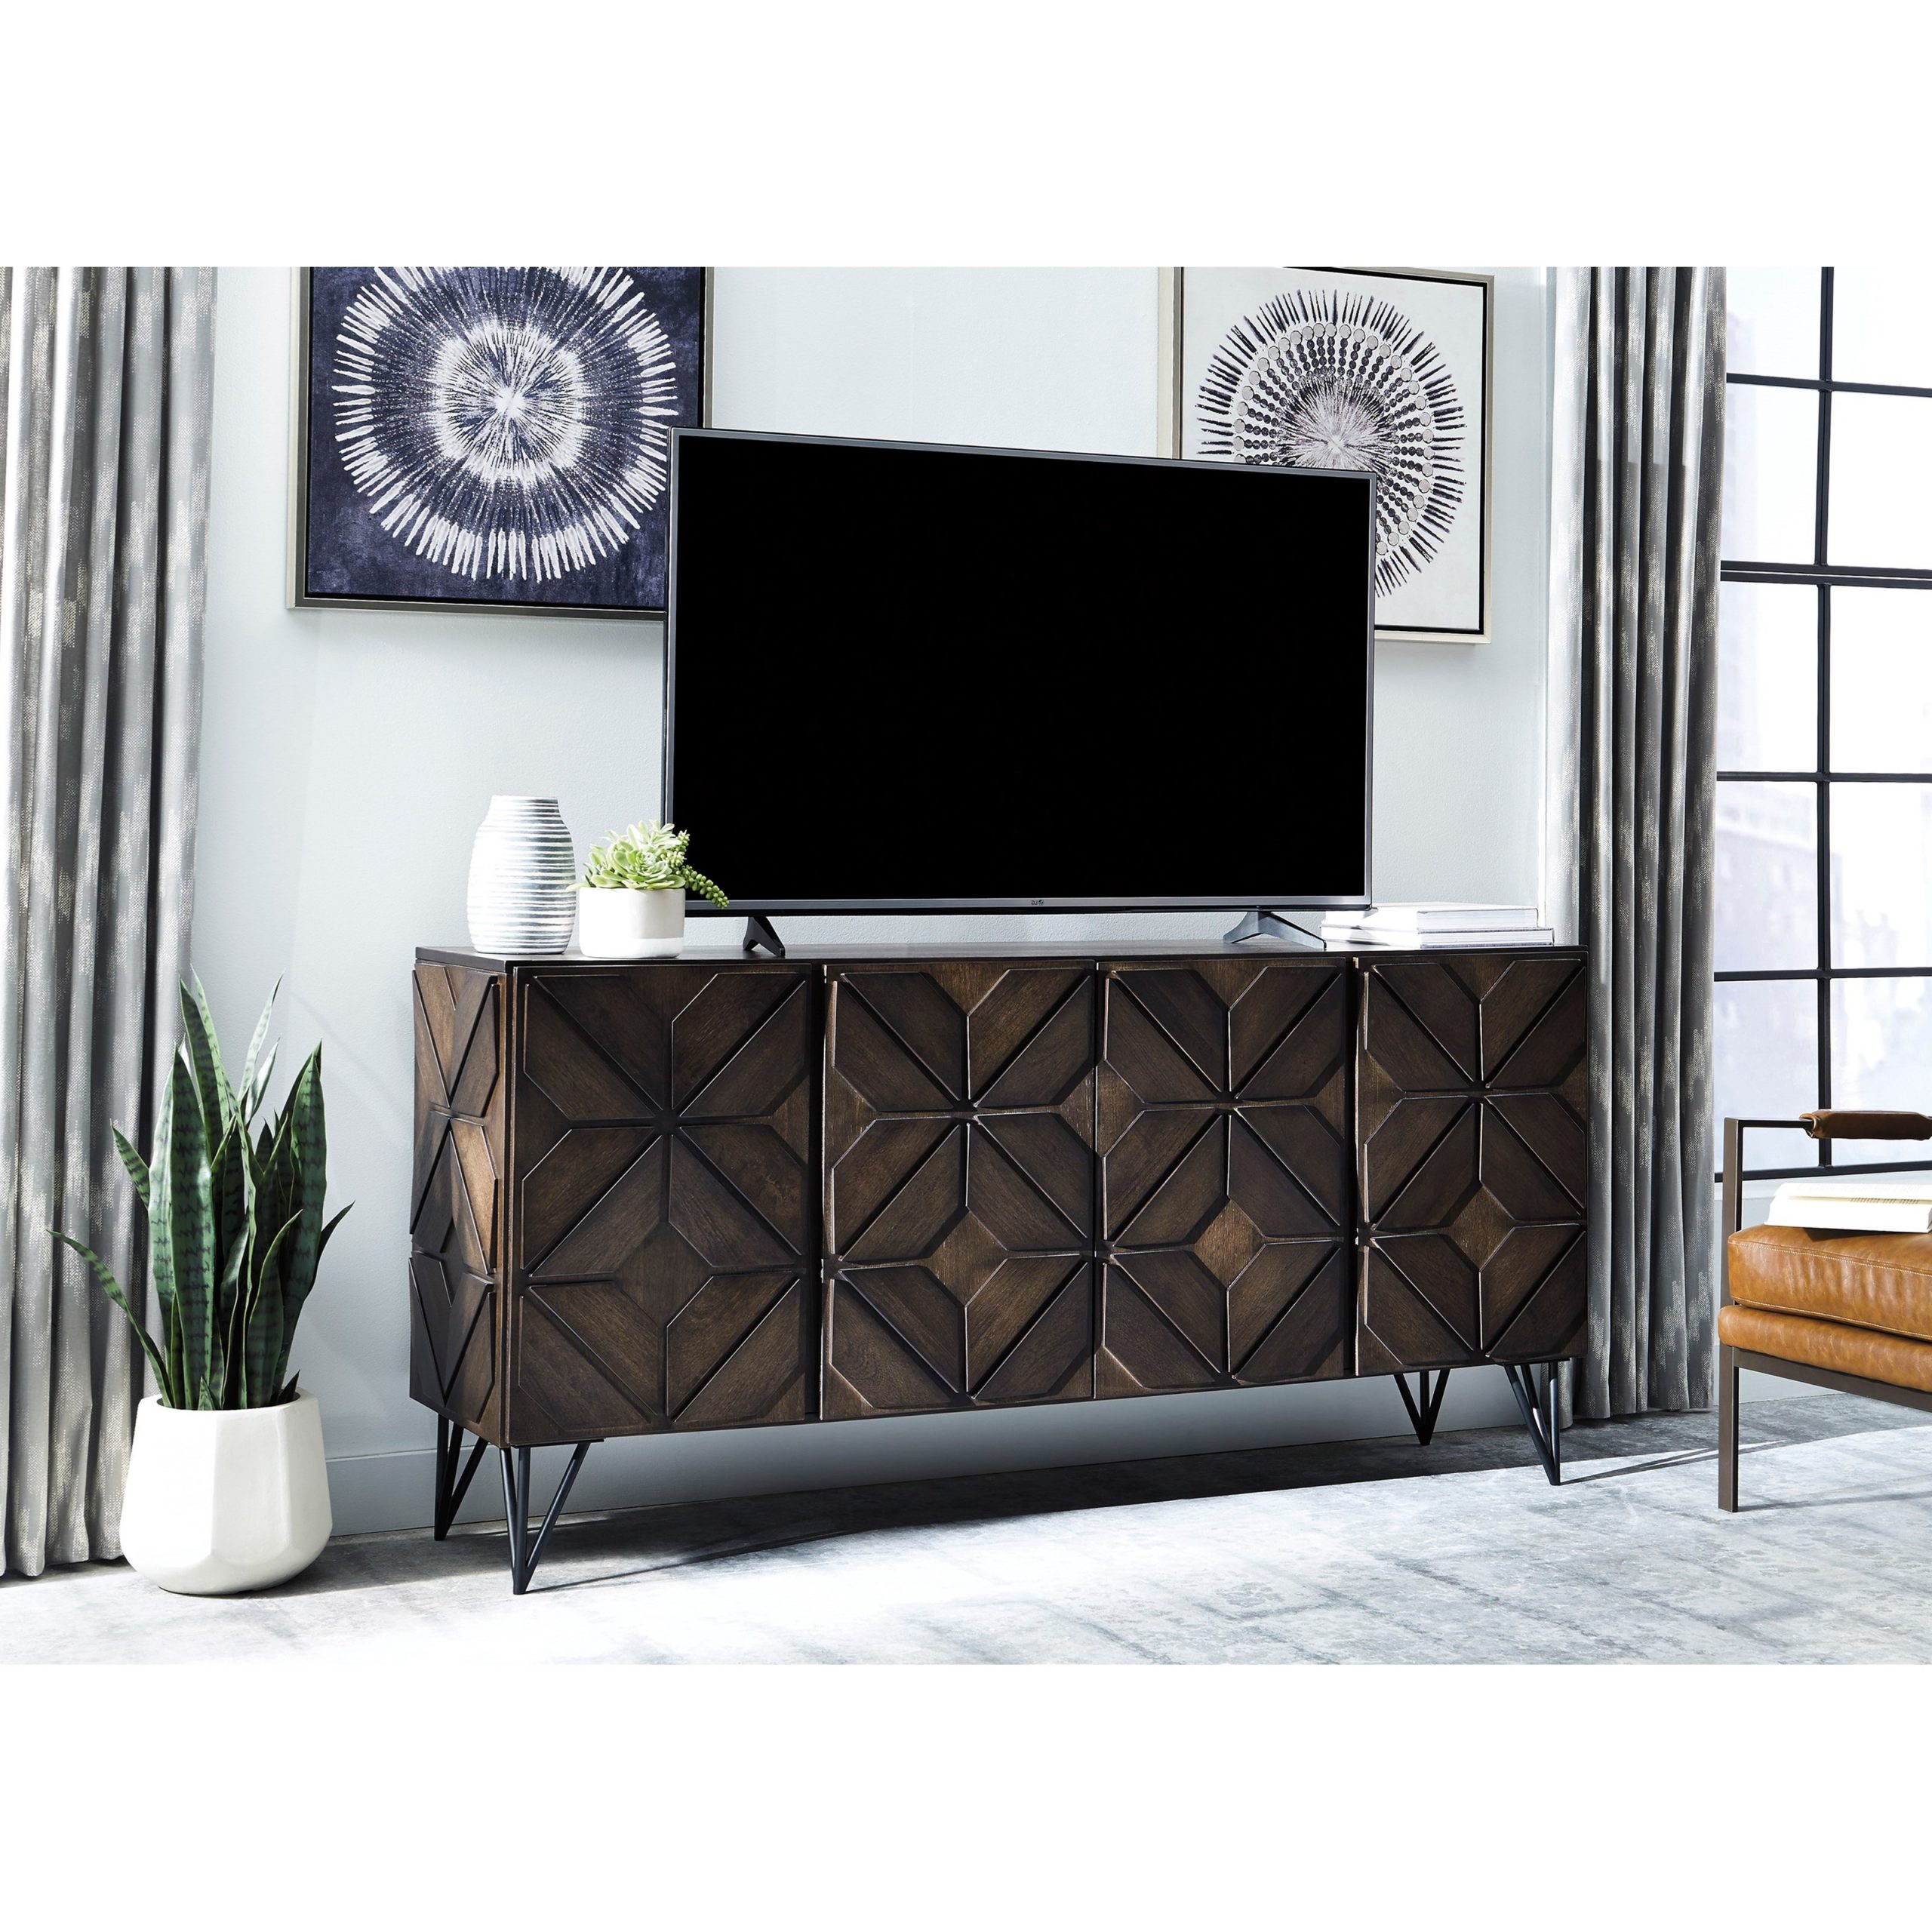 Signature Designashley Chasinfield W648 68 Pertaining To Delta Large Tv Stands (View 1 of 15)